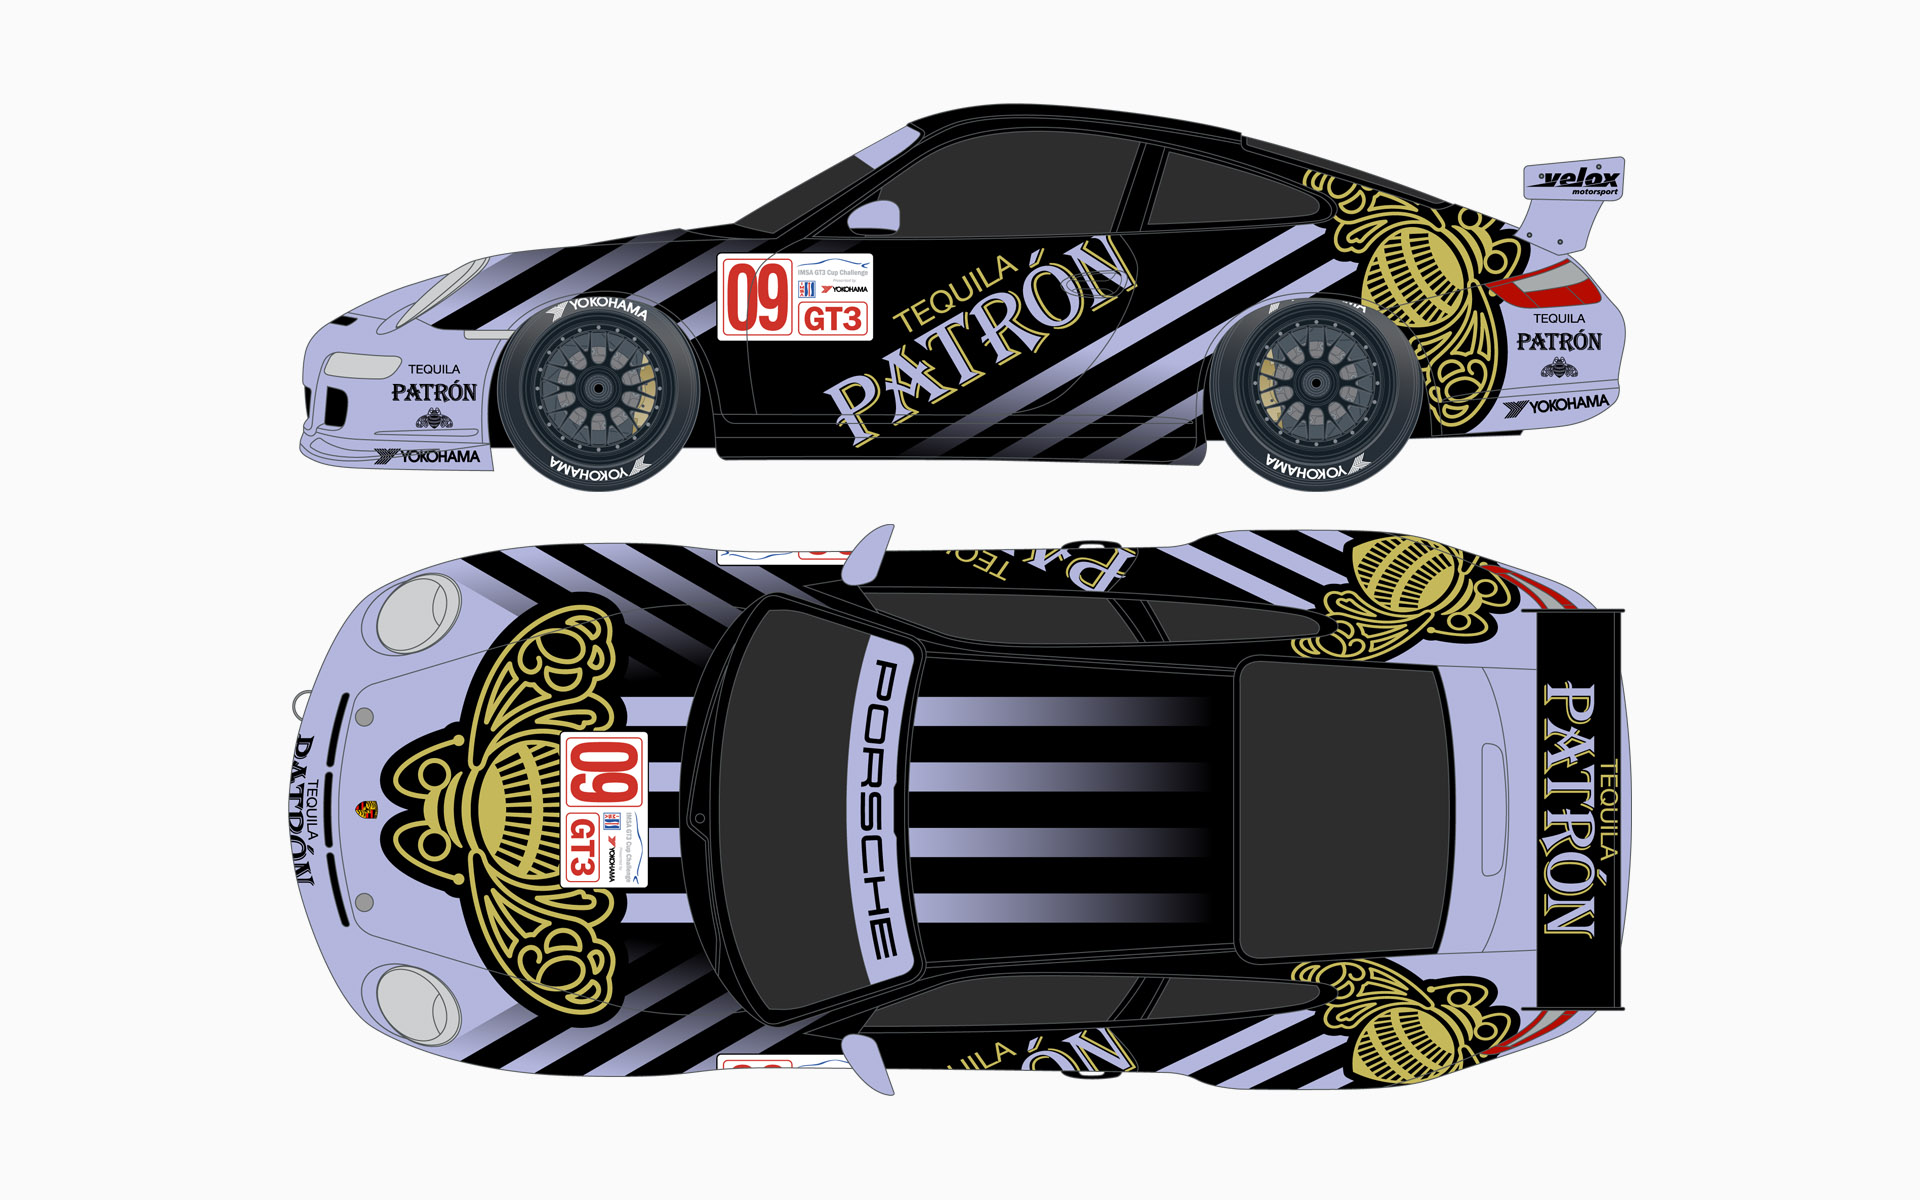 Velox Motorsport Pu00e1tron XO Cafe Porsche 911 GT3 Cup Livery Elevations